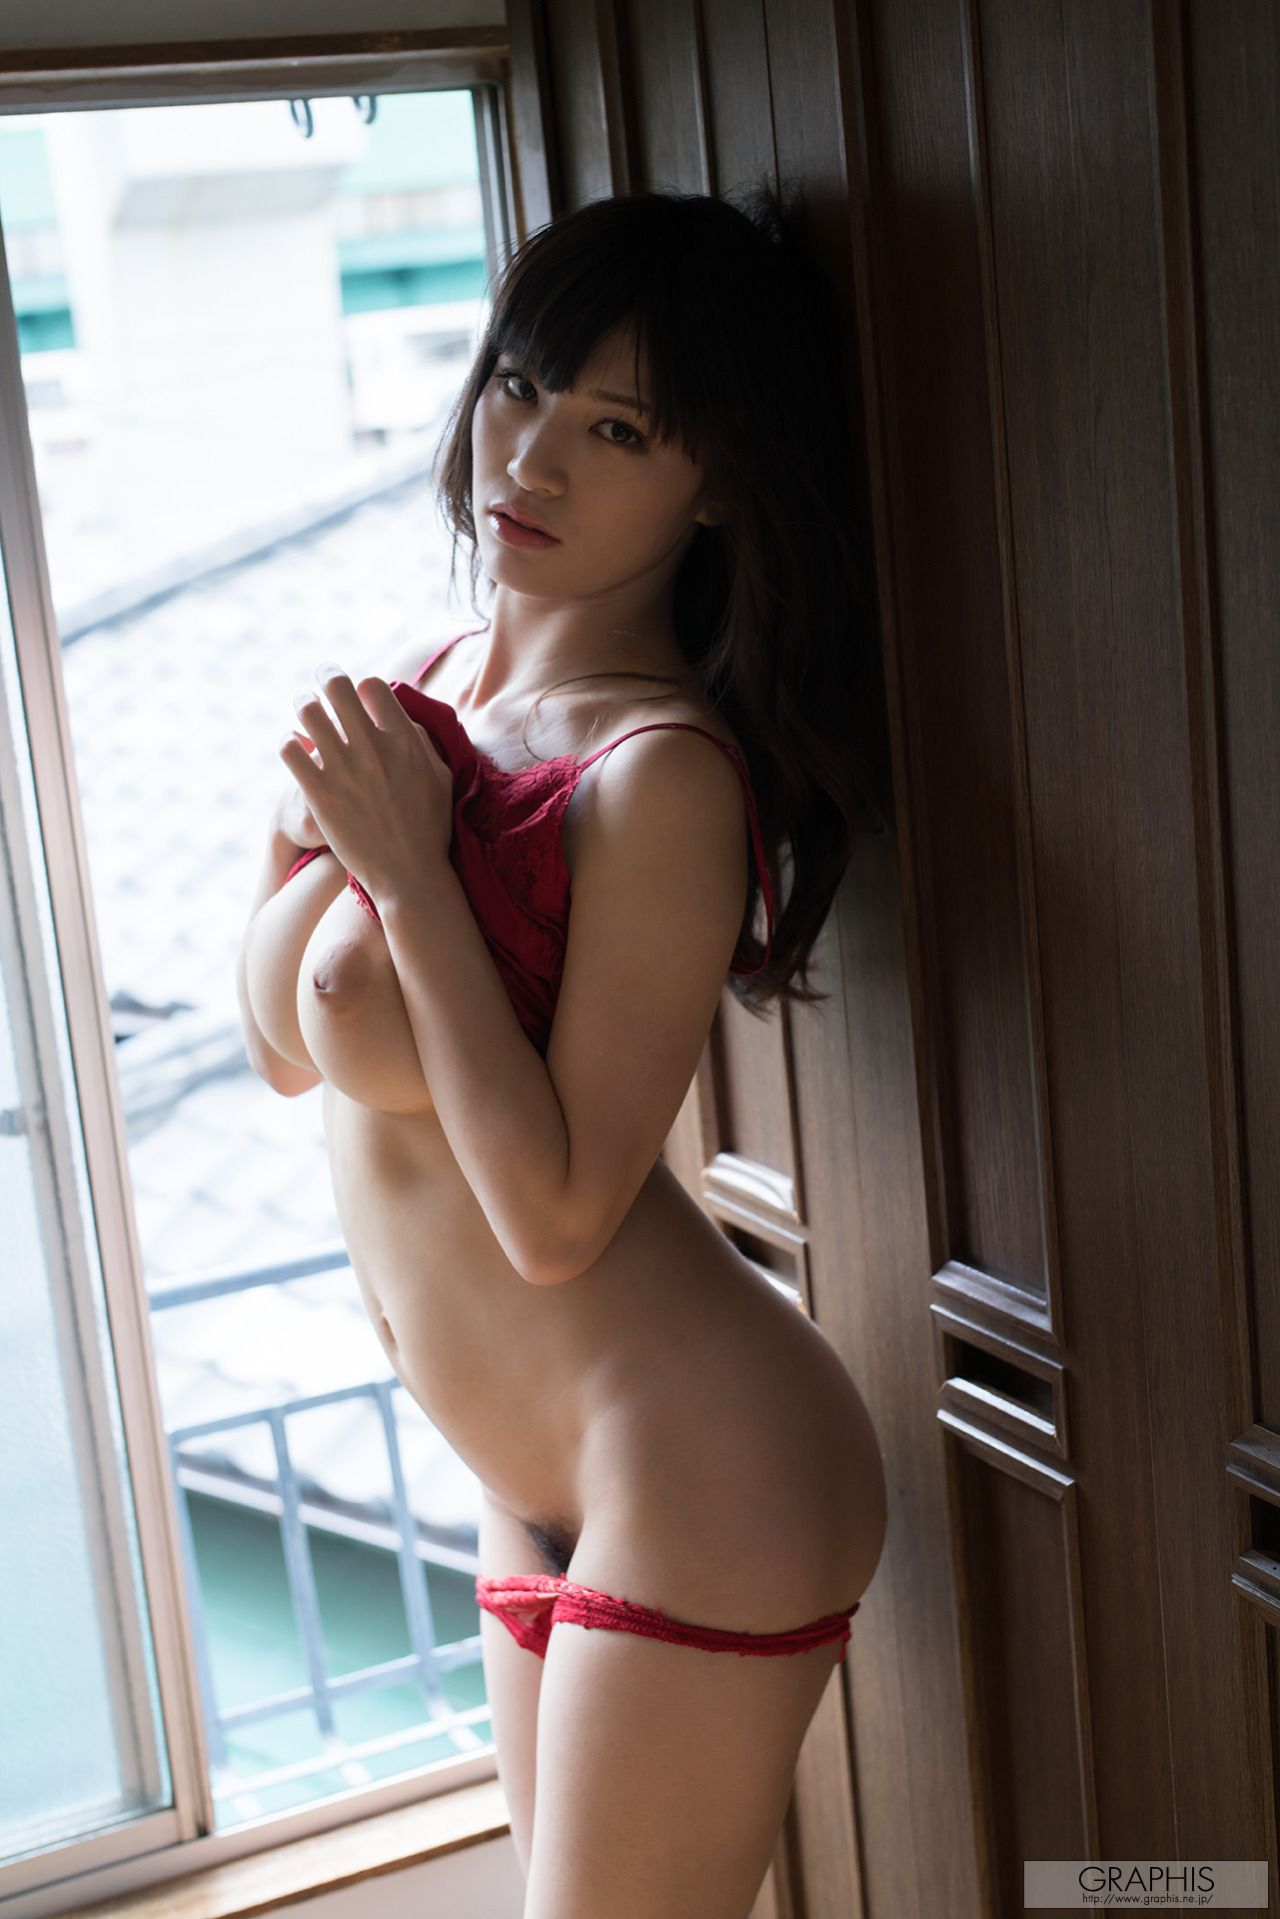 takasaki asian singles Our asian dating site is the #1 trusted dating source for singles across the united states register for free to start seeing your matches today.